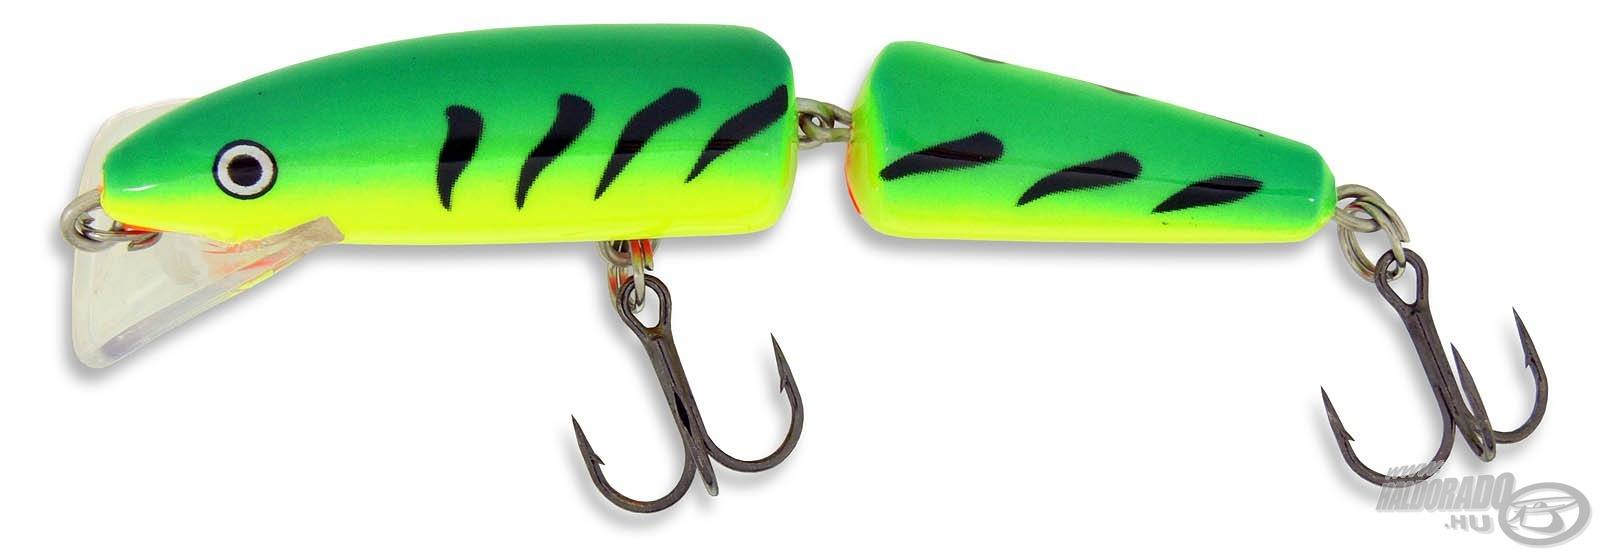 Rapala Scatter Rap Jointed SCRJ09 FT 3990 helyett 2990Ft